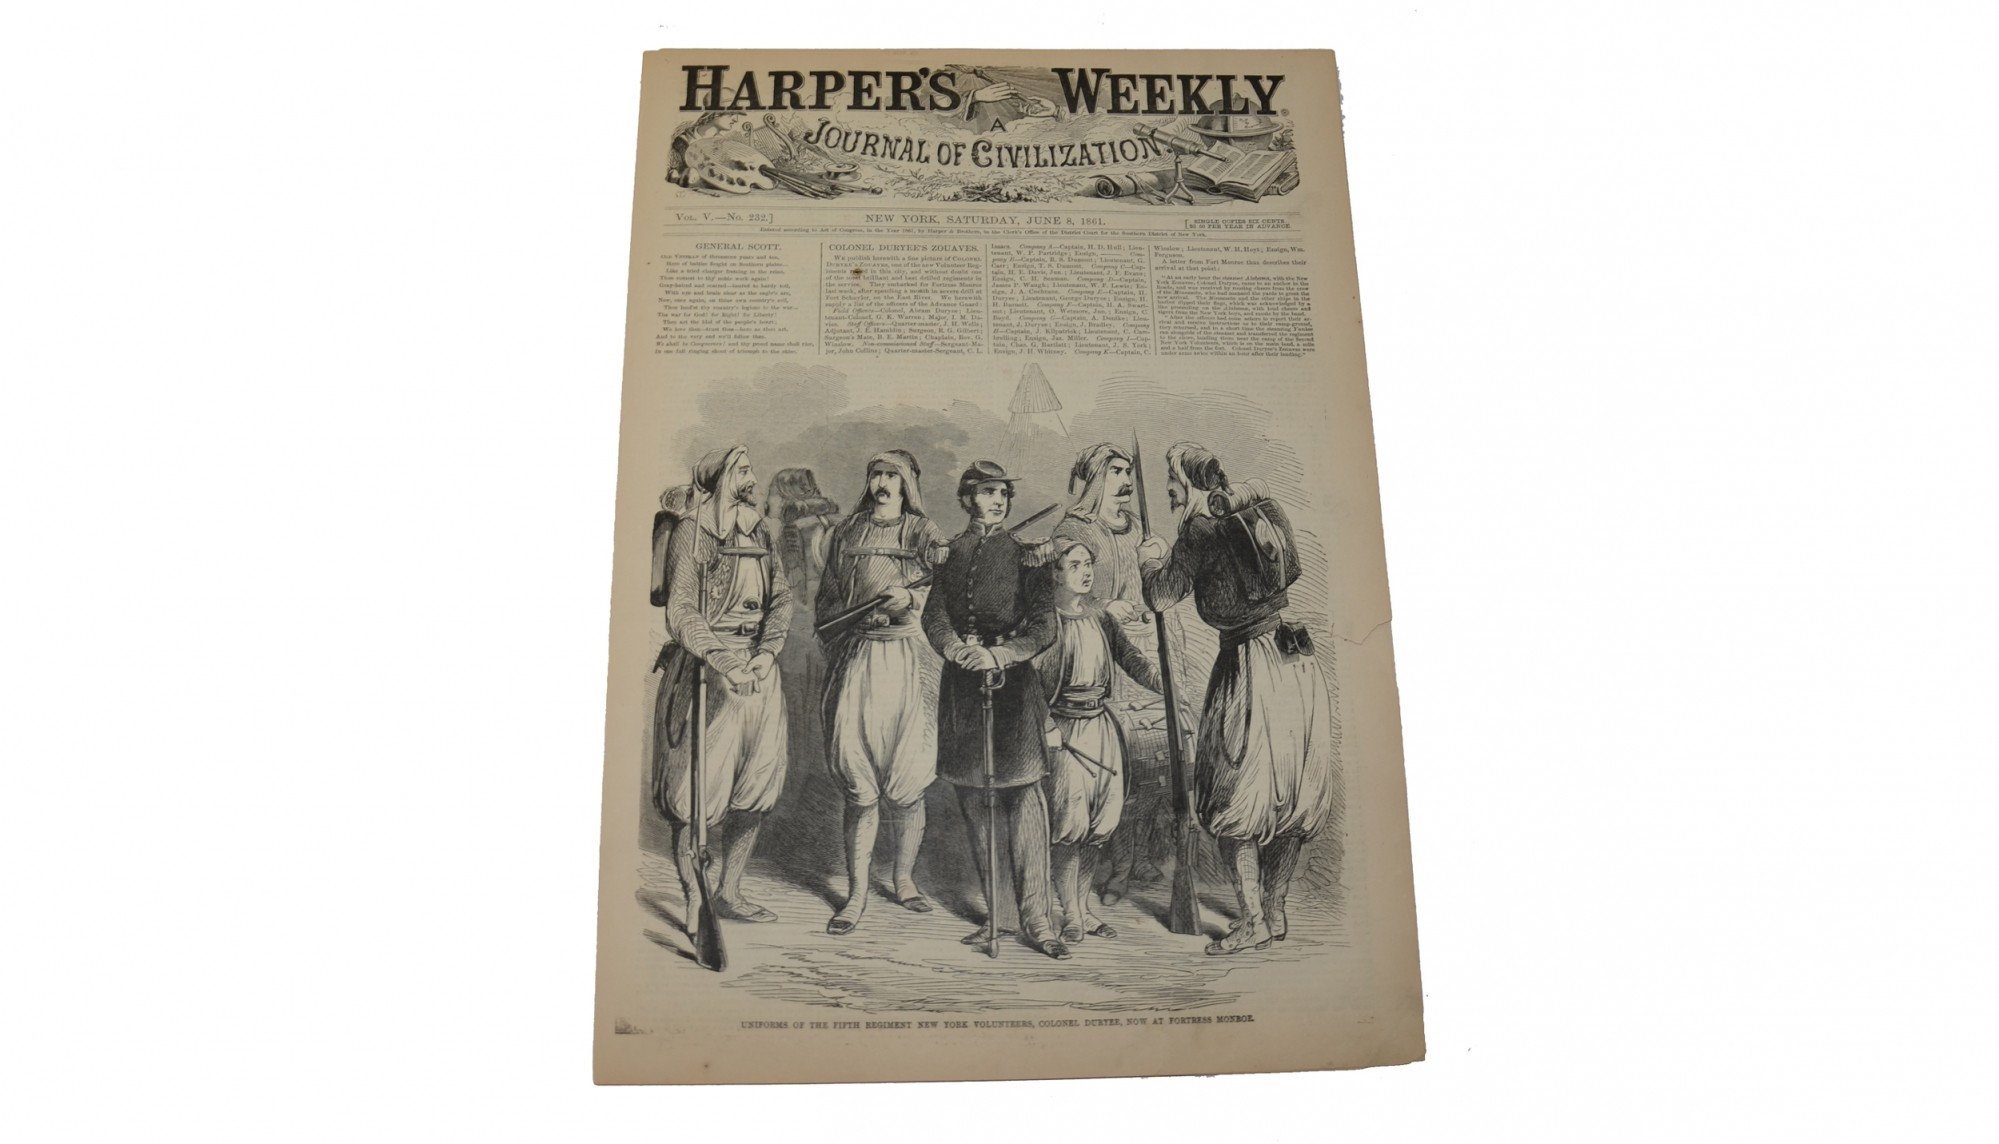 HARPER'S WEEKLY, DATED JUNE 8, 1861 - 5TH NEW YORK DURYEE'S ZOAUVES